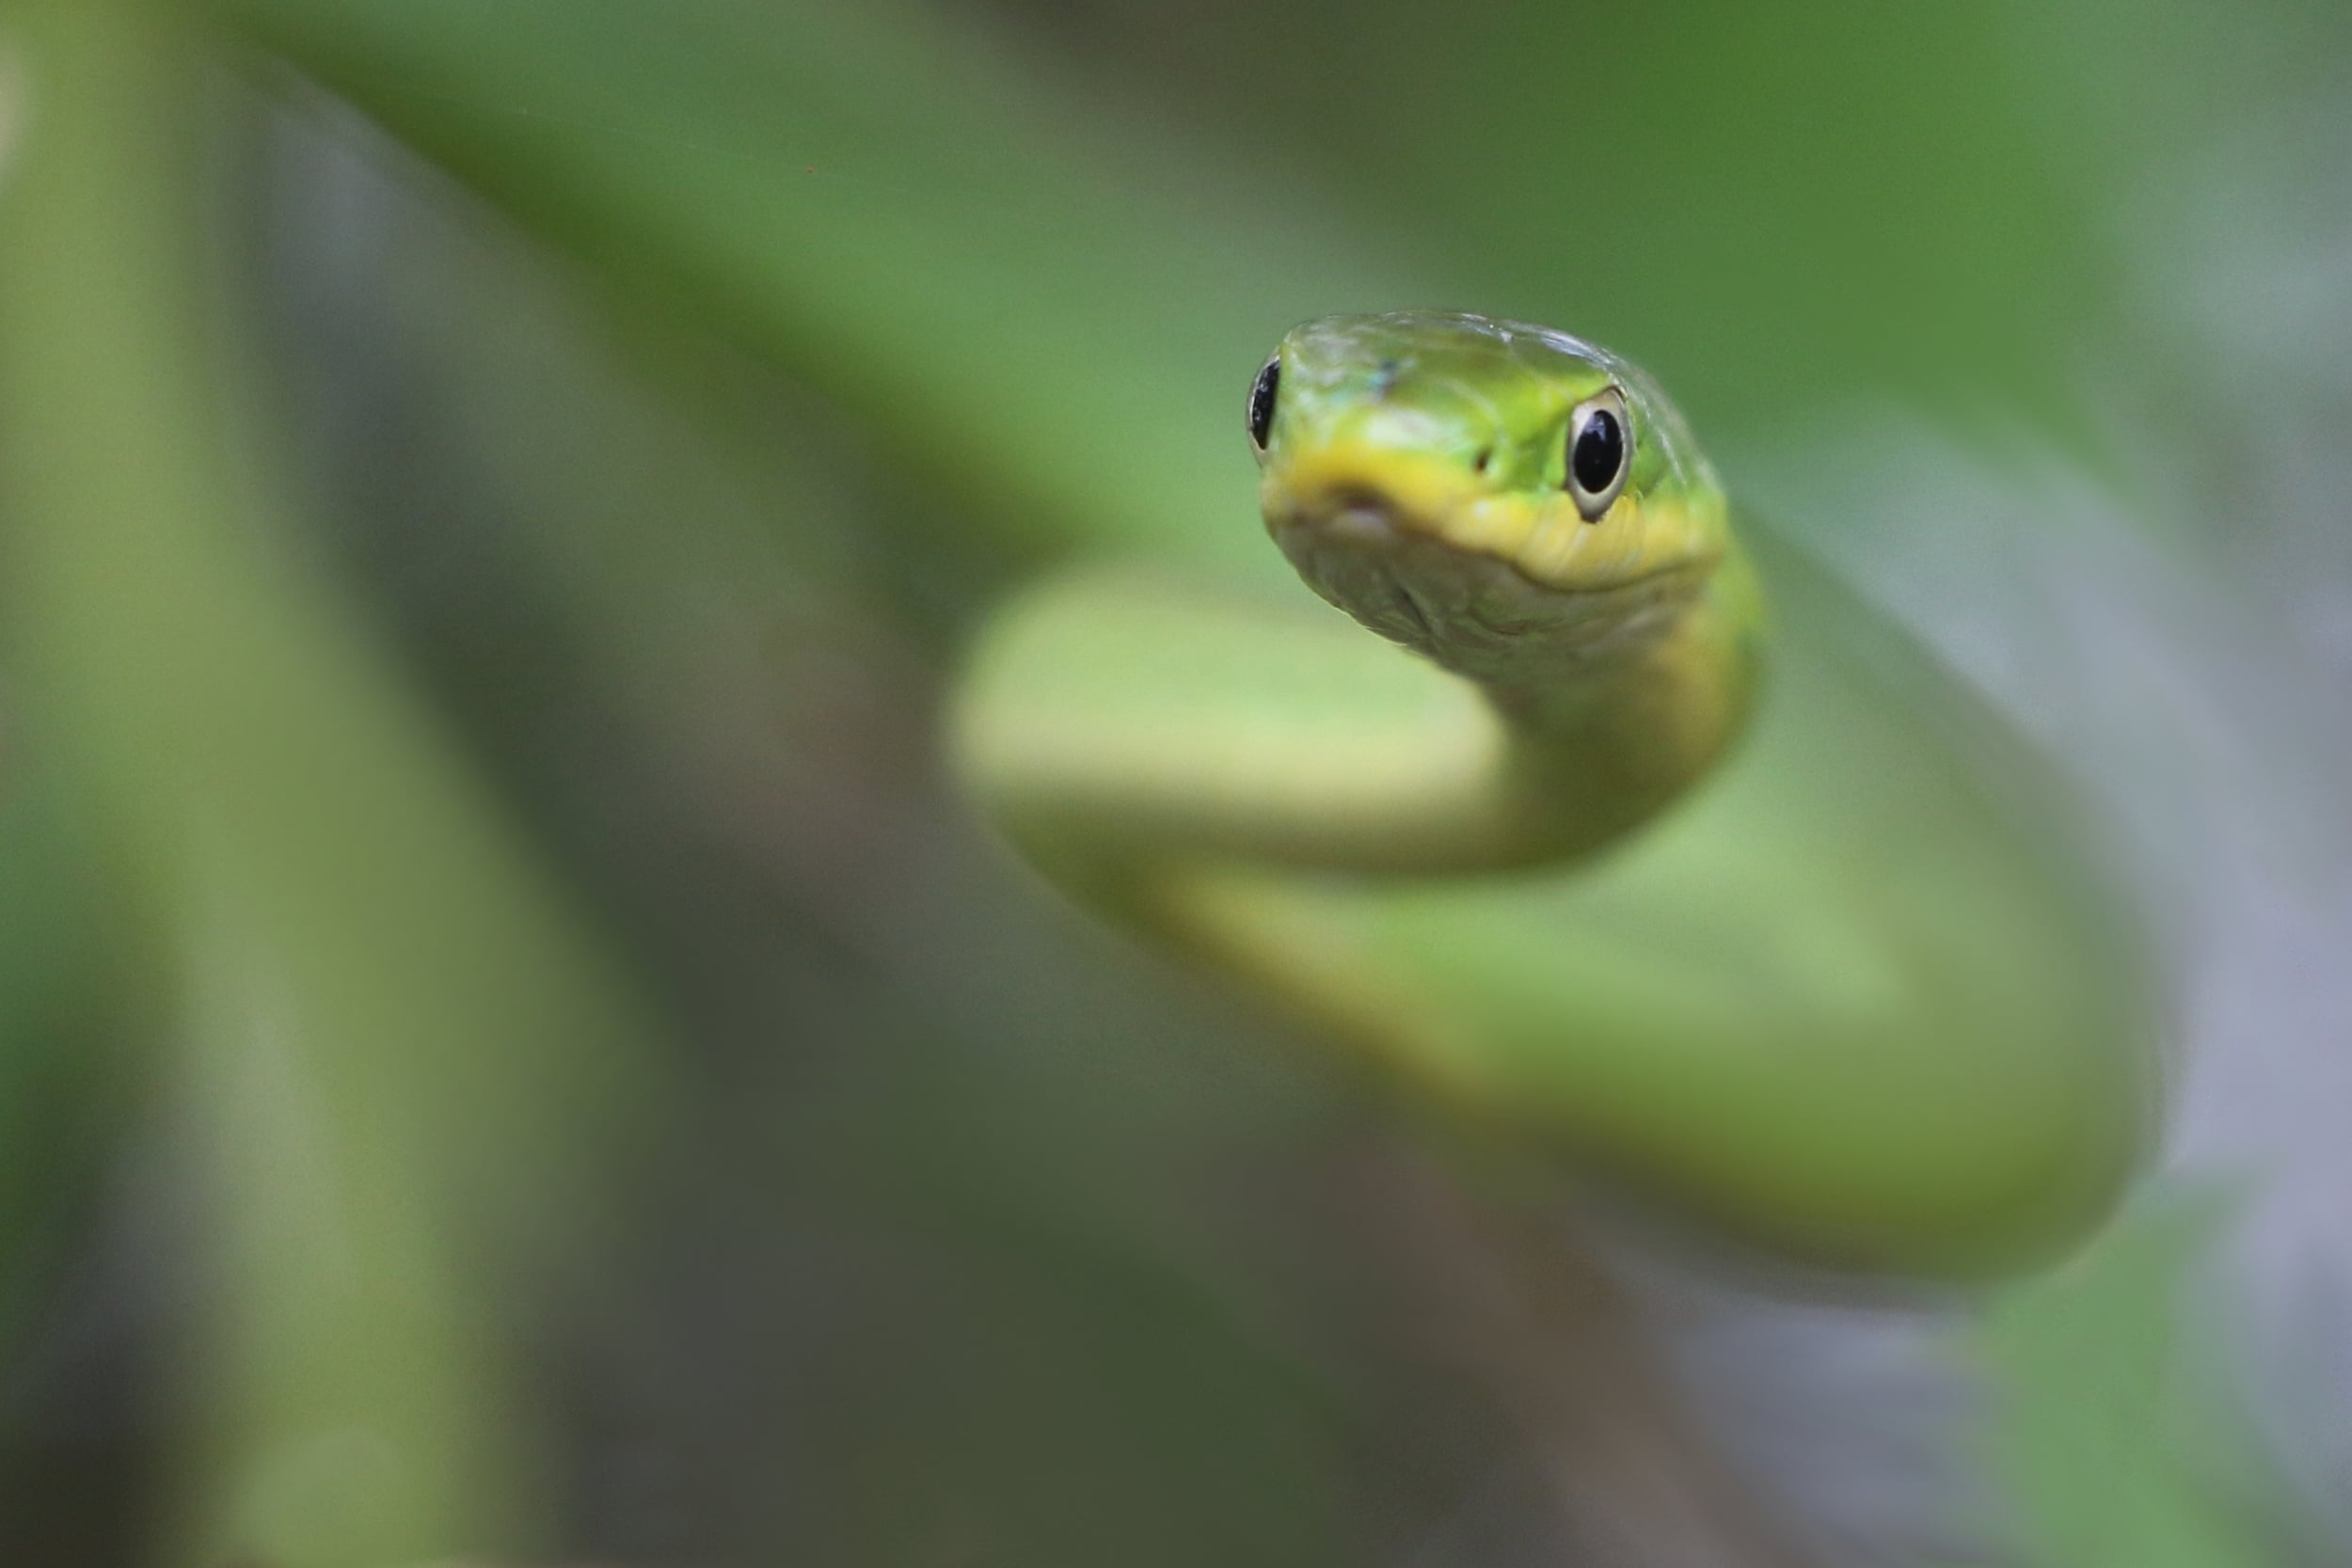 Rough Greensnake - I found this guy hanging out in the vegetation during the day . He didn't know it, but he'd become one of my favorite photos of the year.